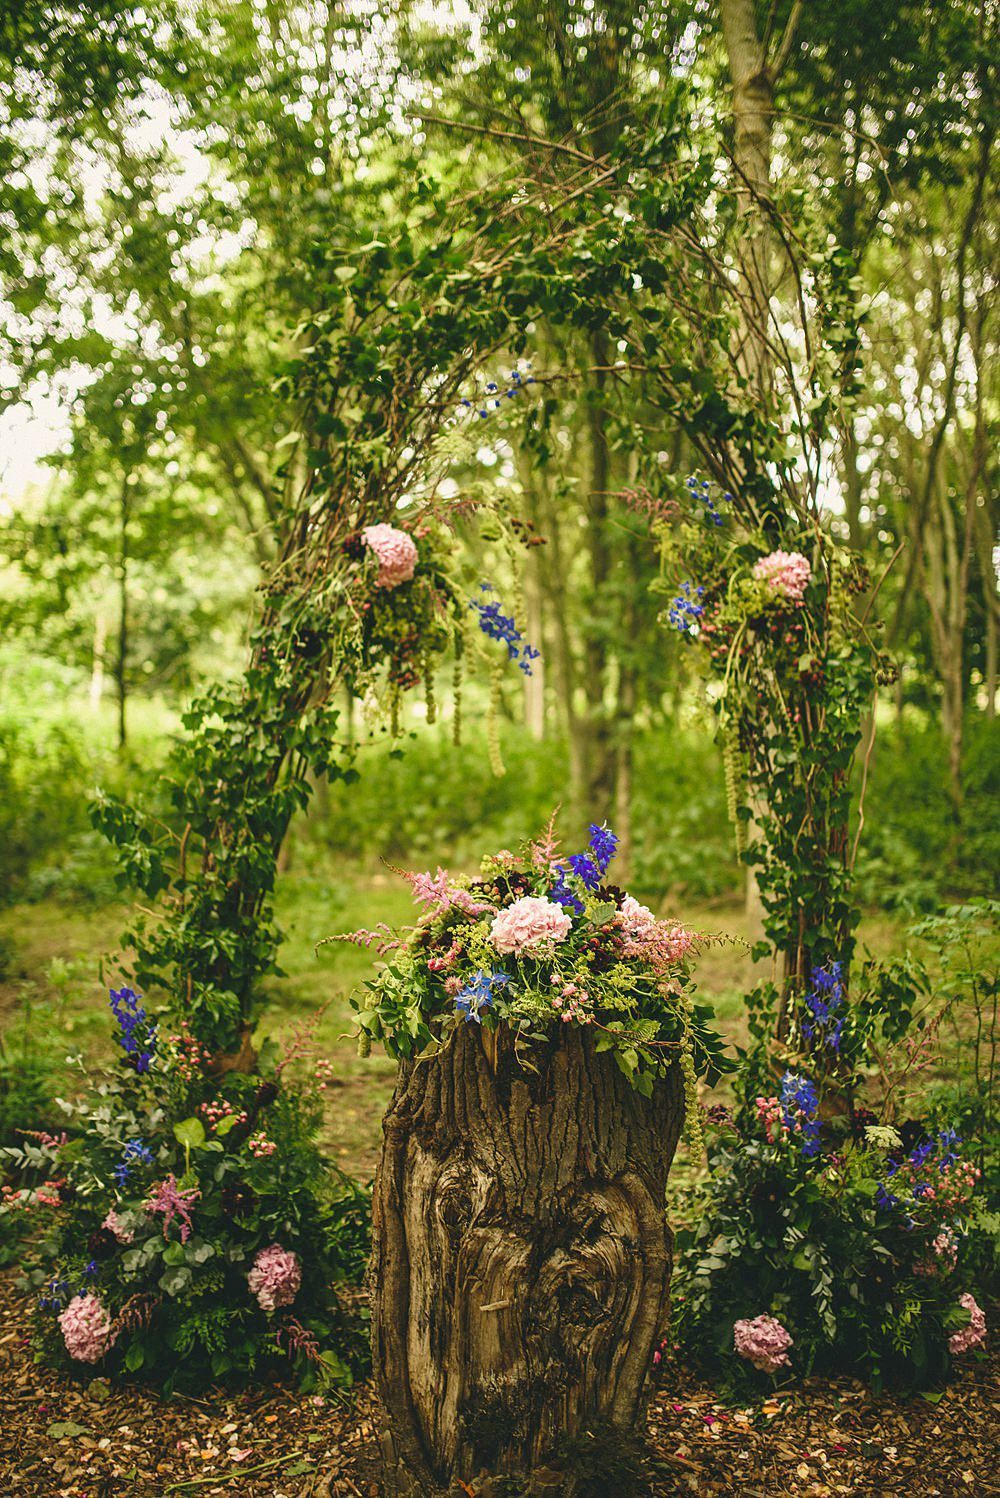 Stunning flowers in woodland setting.